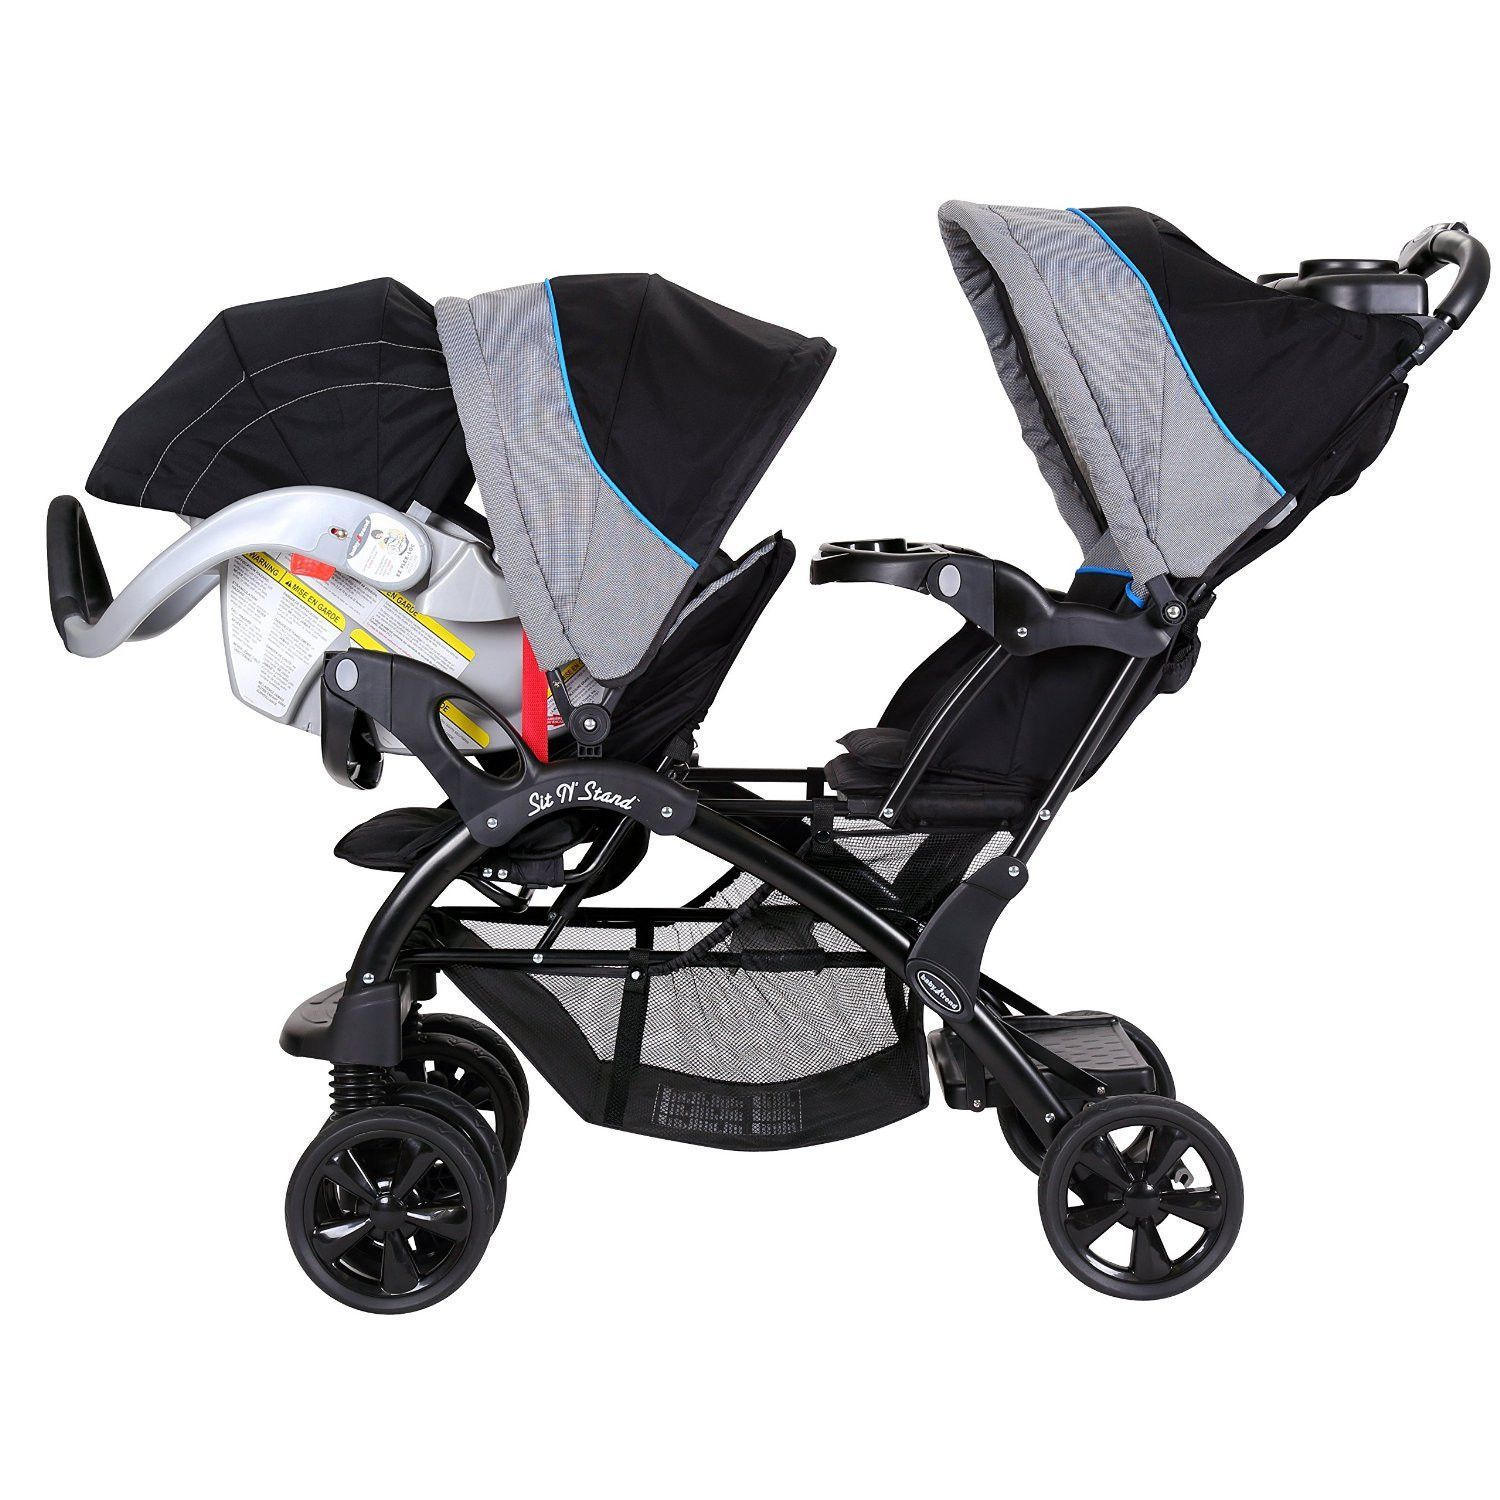 Baby Trend Double Sit N Stand Twin Stroller Travel System